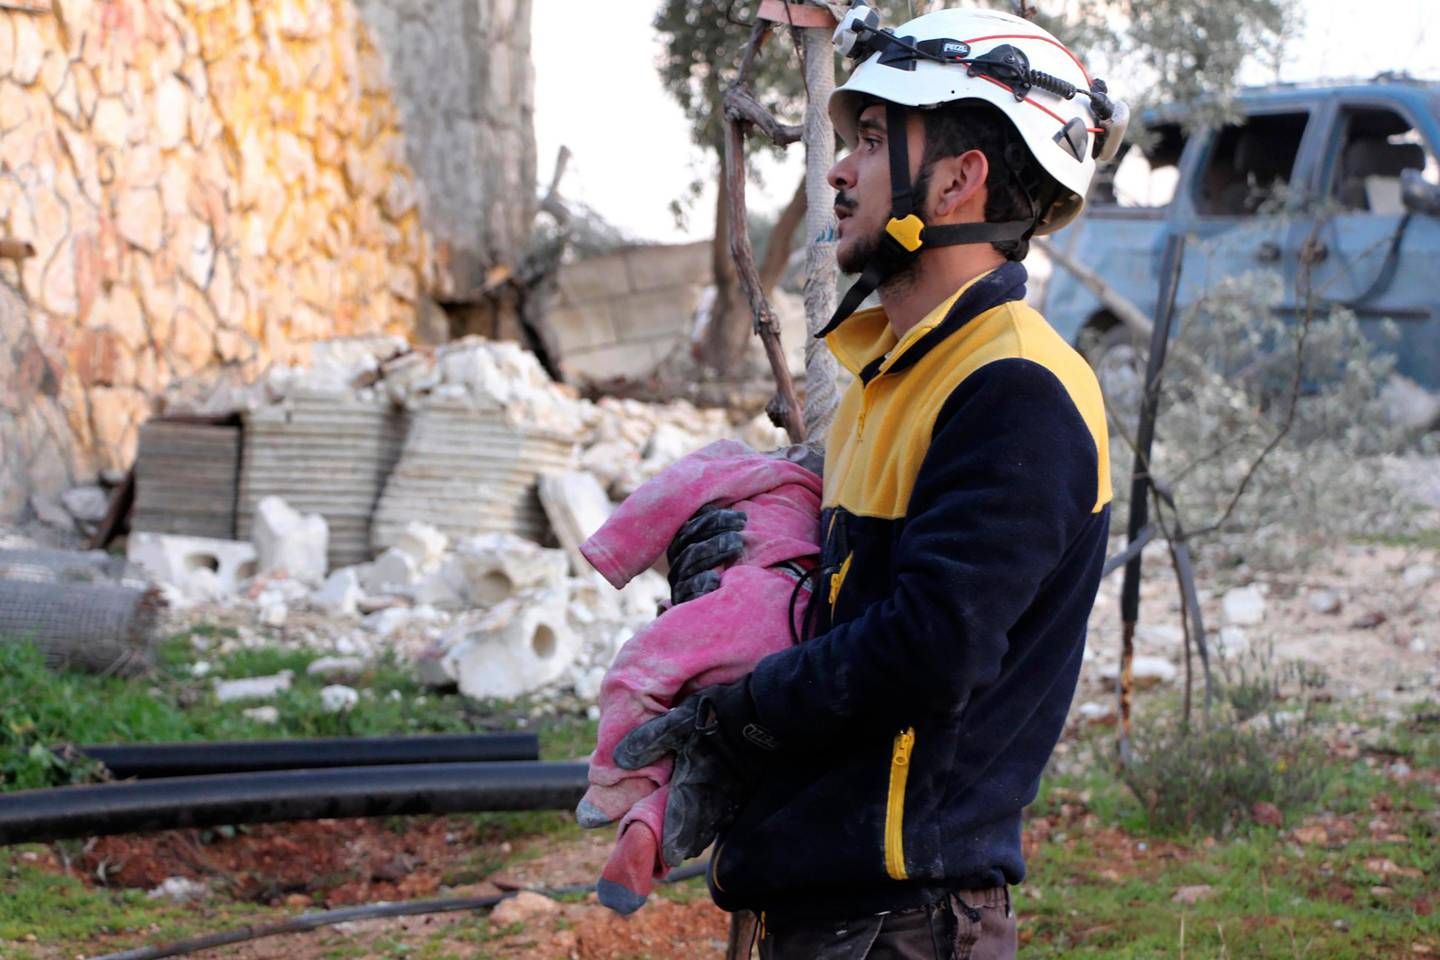 This photo provided by the Syrian Civil Defense White Helmets, which has been authenticated based on its contents and other AP reporting, a Syrian White Helmet civil defense worker carries a child victim after Russian airstrikes hit Maaret Musreen village, in Idlib province, Syria, Thursday, March 5, 2020. An airstrike on a rebel-held village in northwestern Syria early Thursday. (Syrian Civil Defense White Helmets via AP)